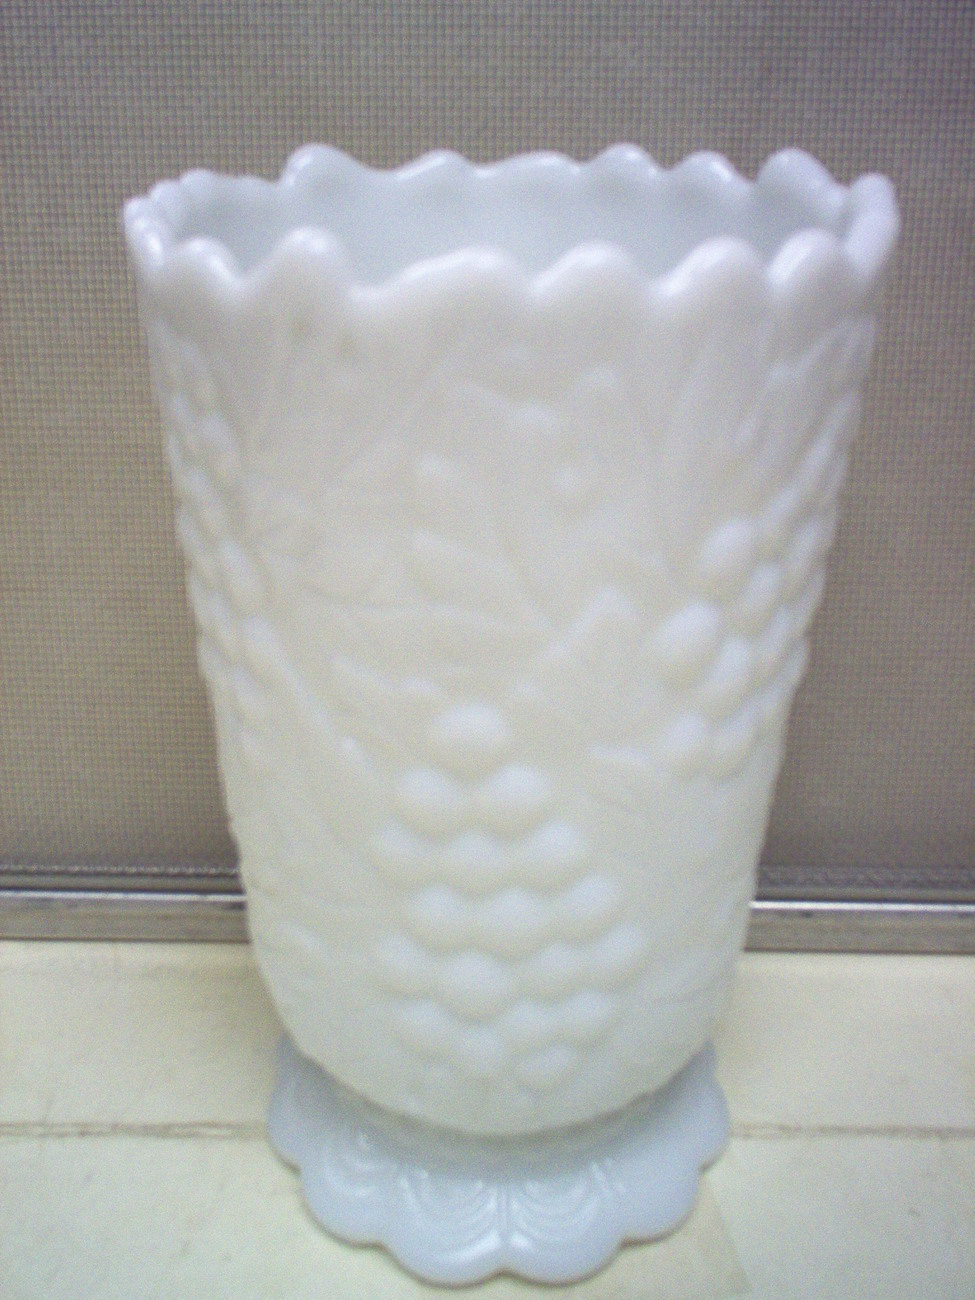 Milk glass 3 021